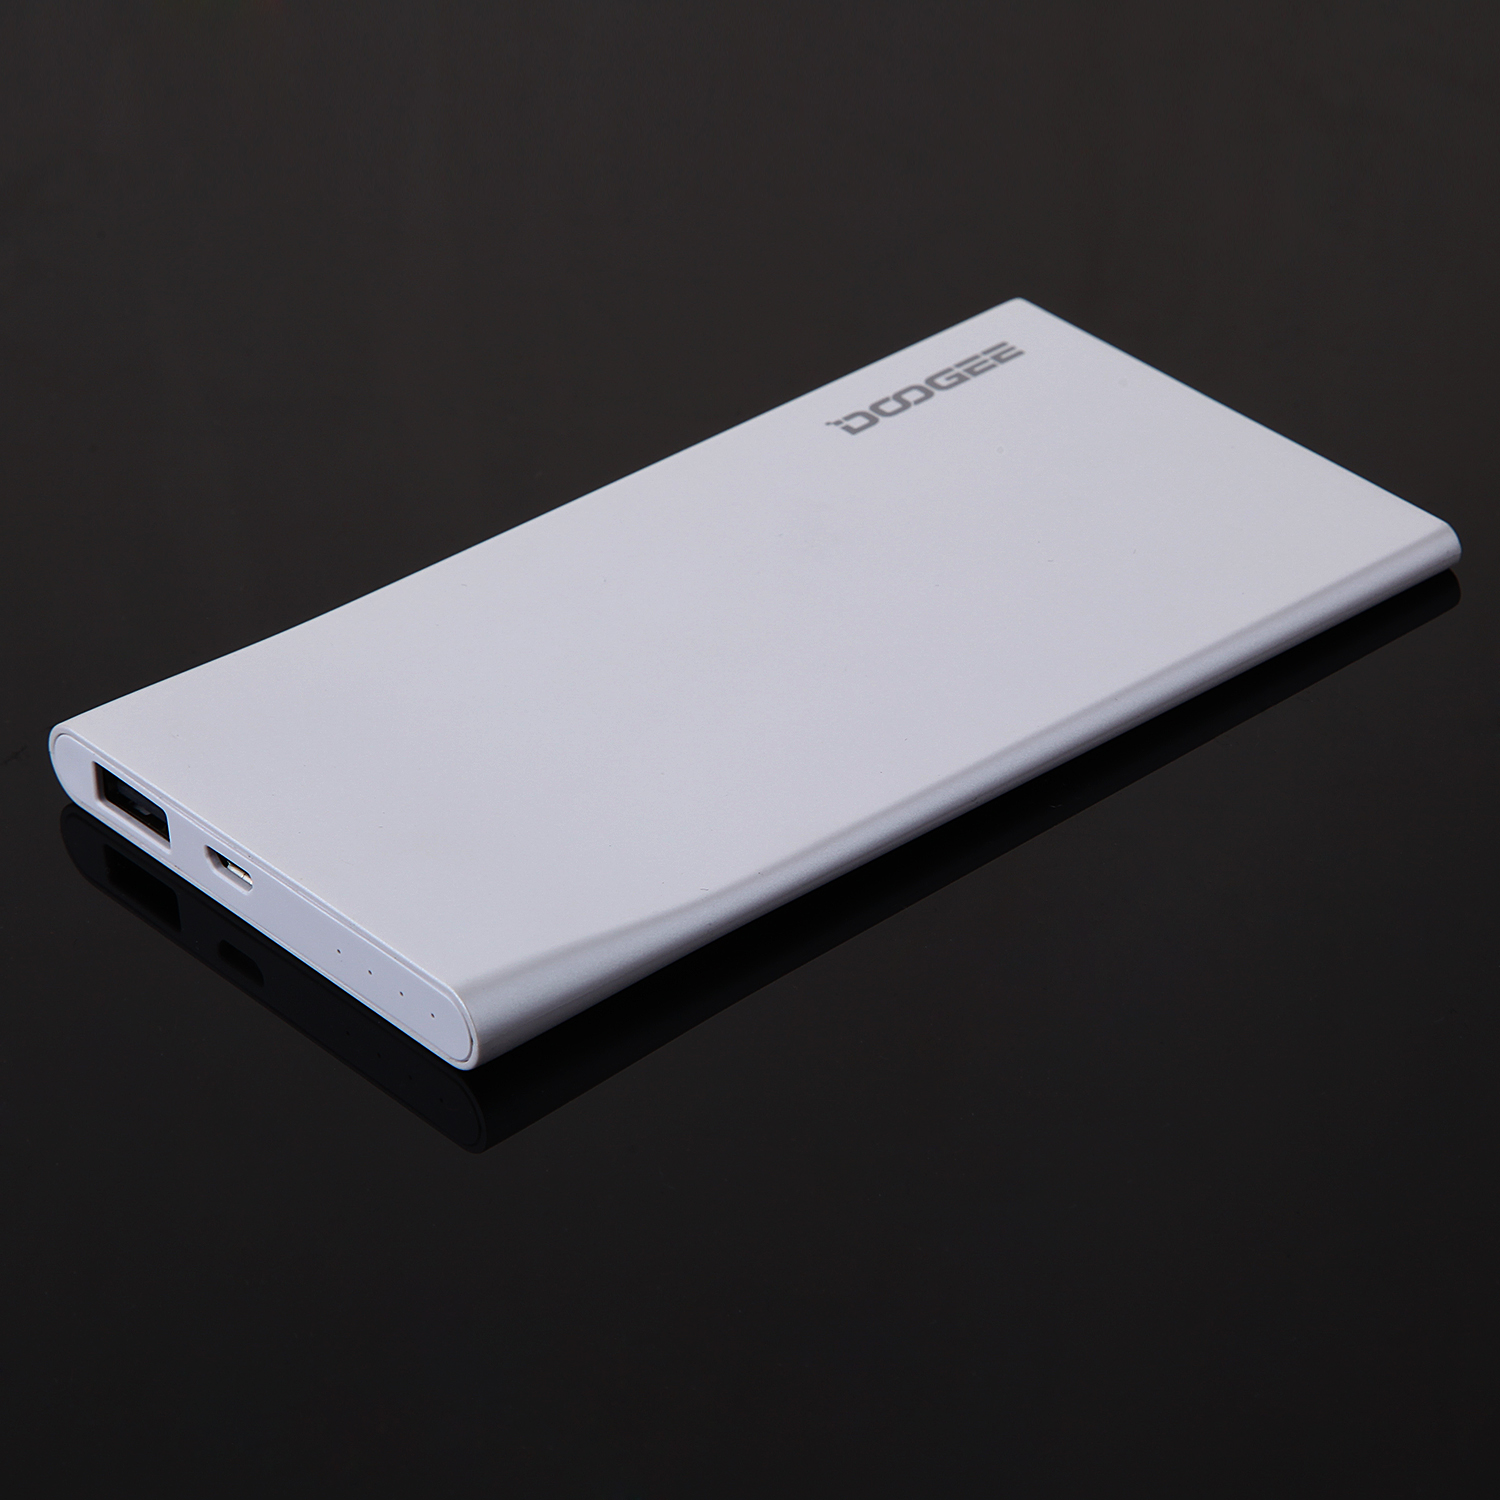 Ultrathin DOOGEE 5V 1A 2500mAh Power Bank for Smart Phone Tablet PC Silver